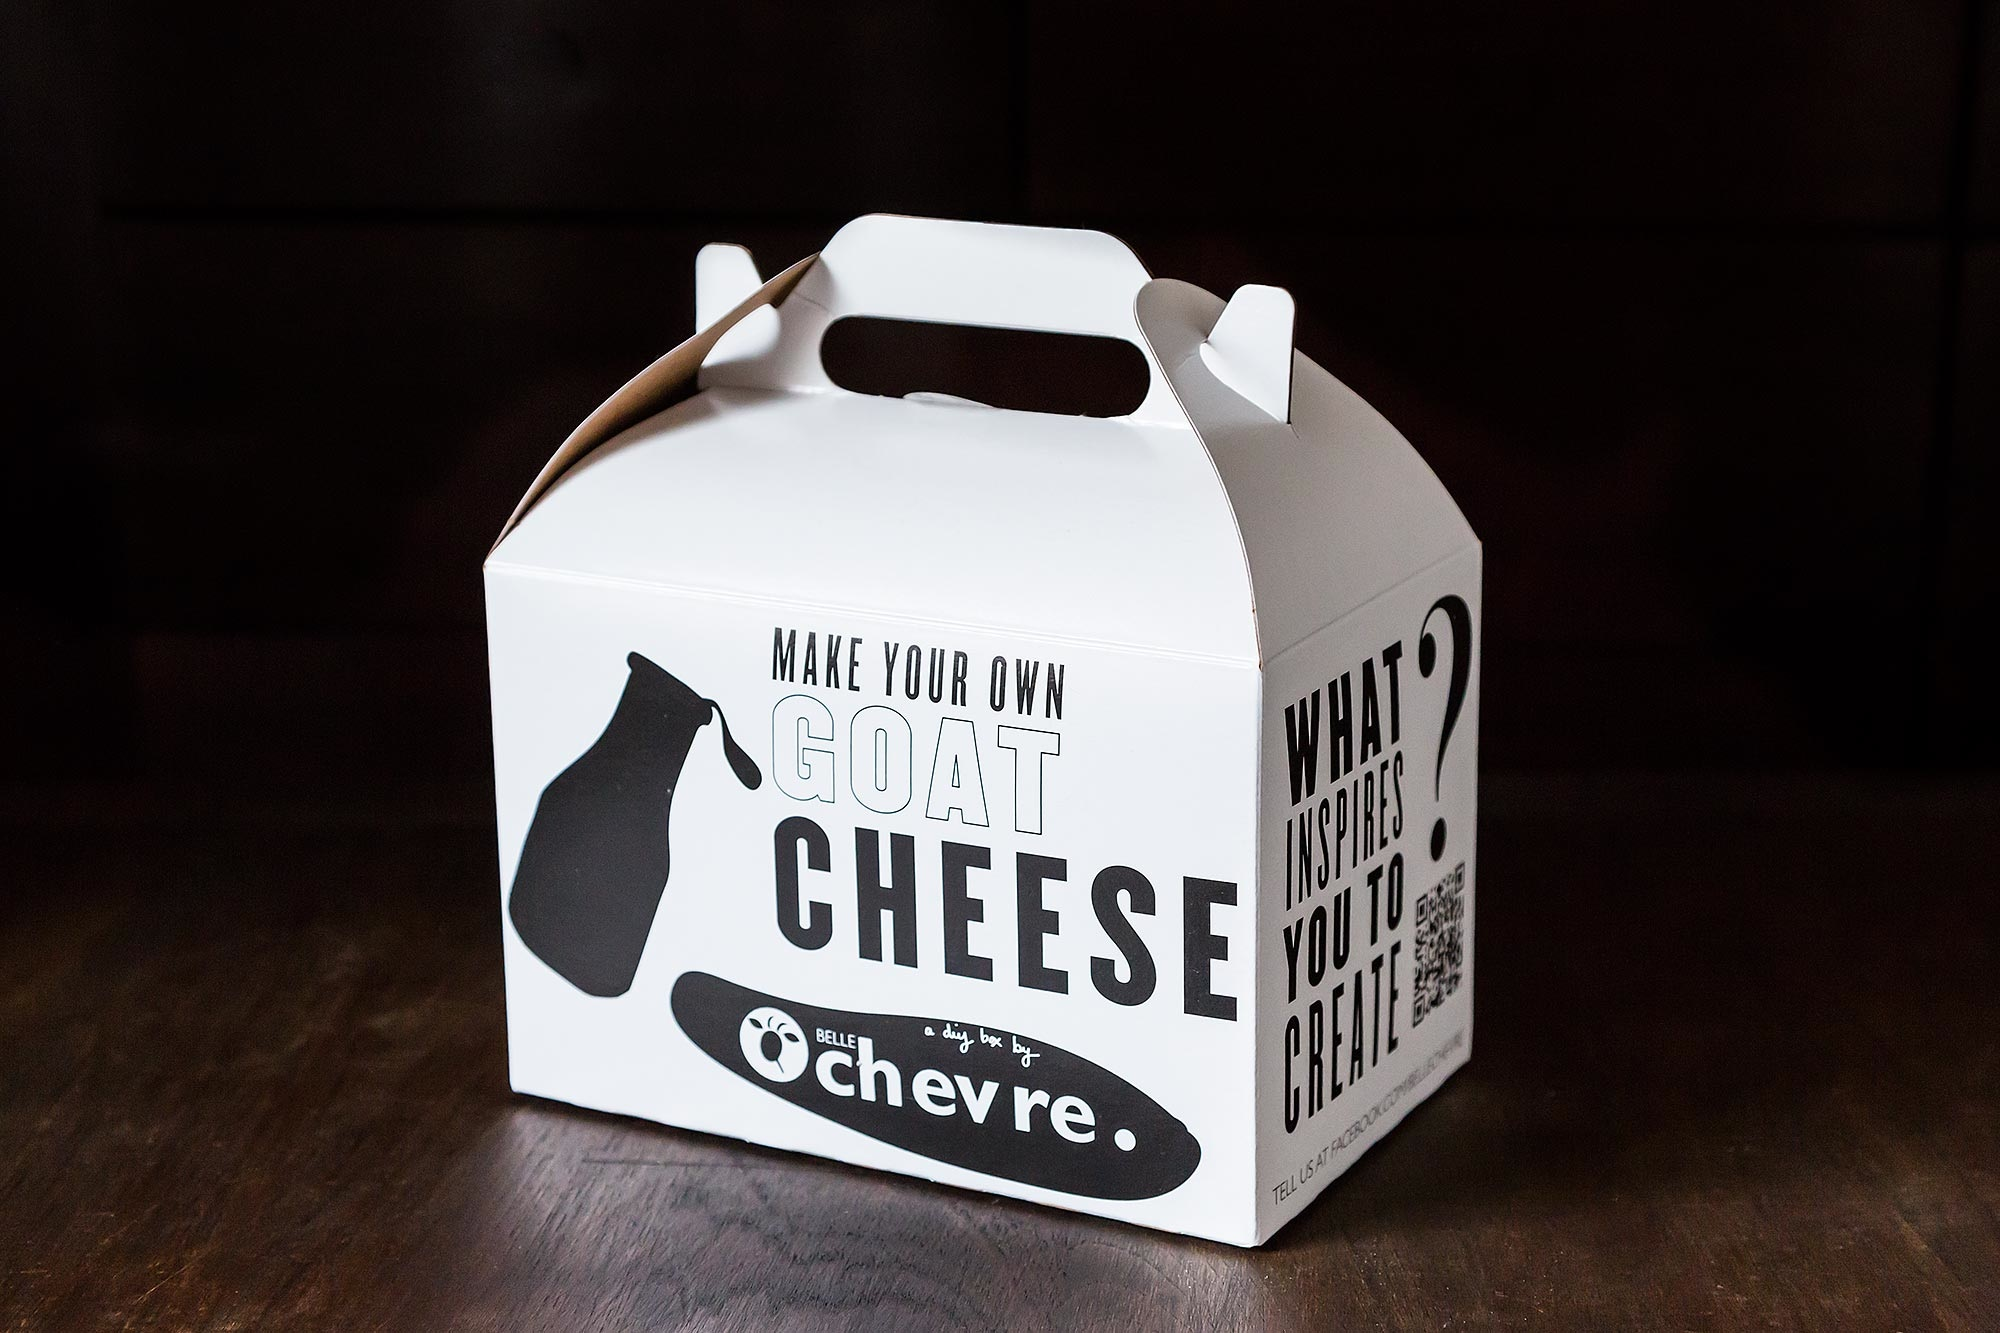 Belle Chevre Goat Cheese Kit